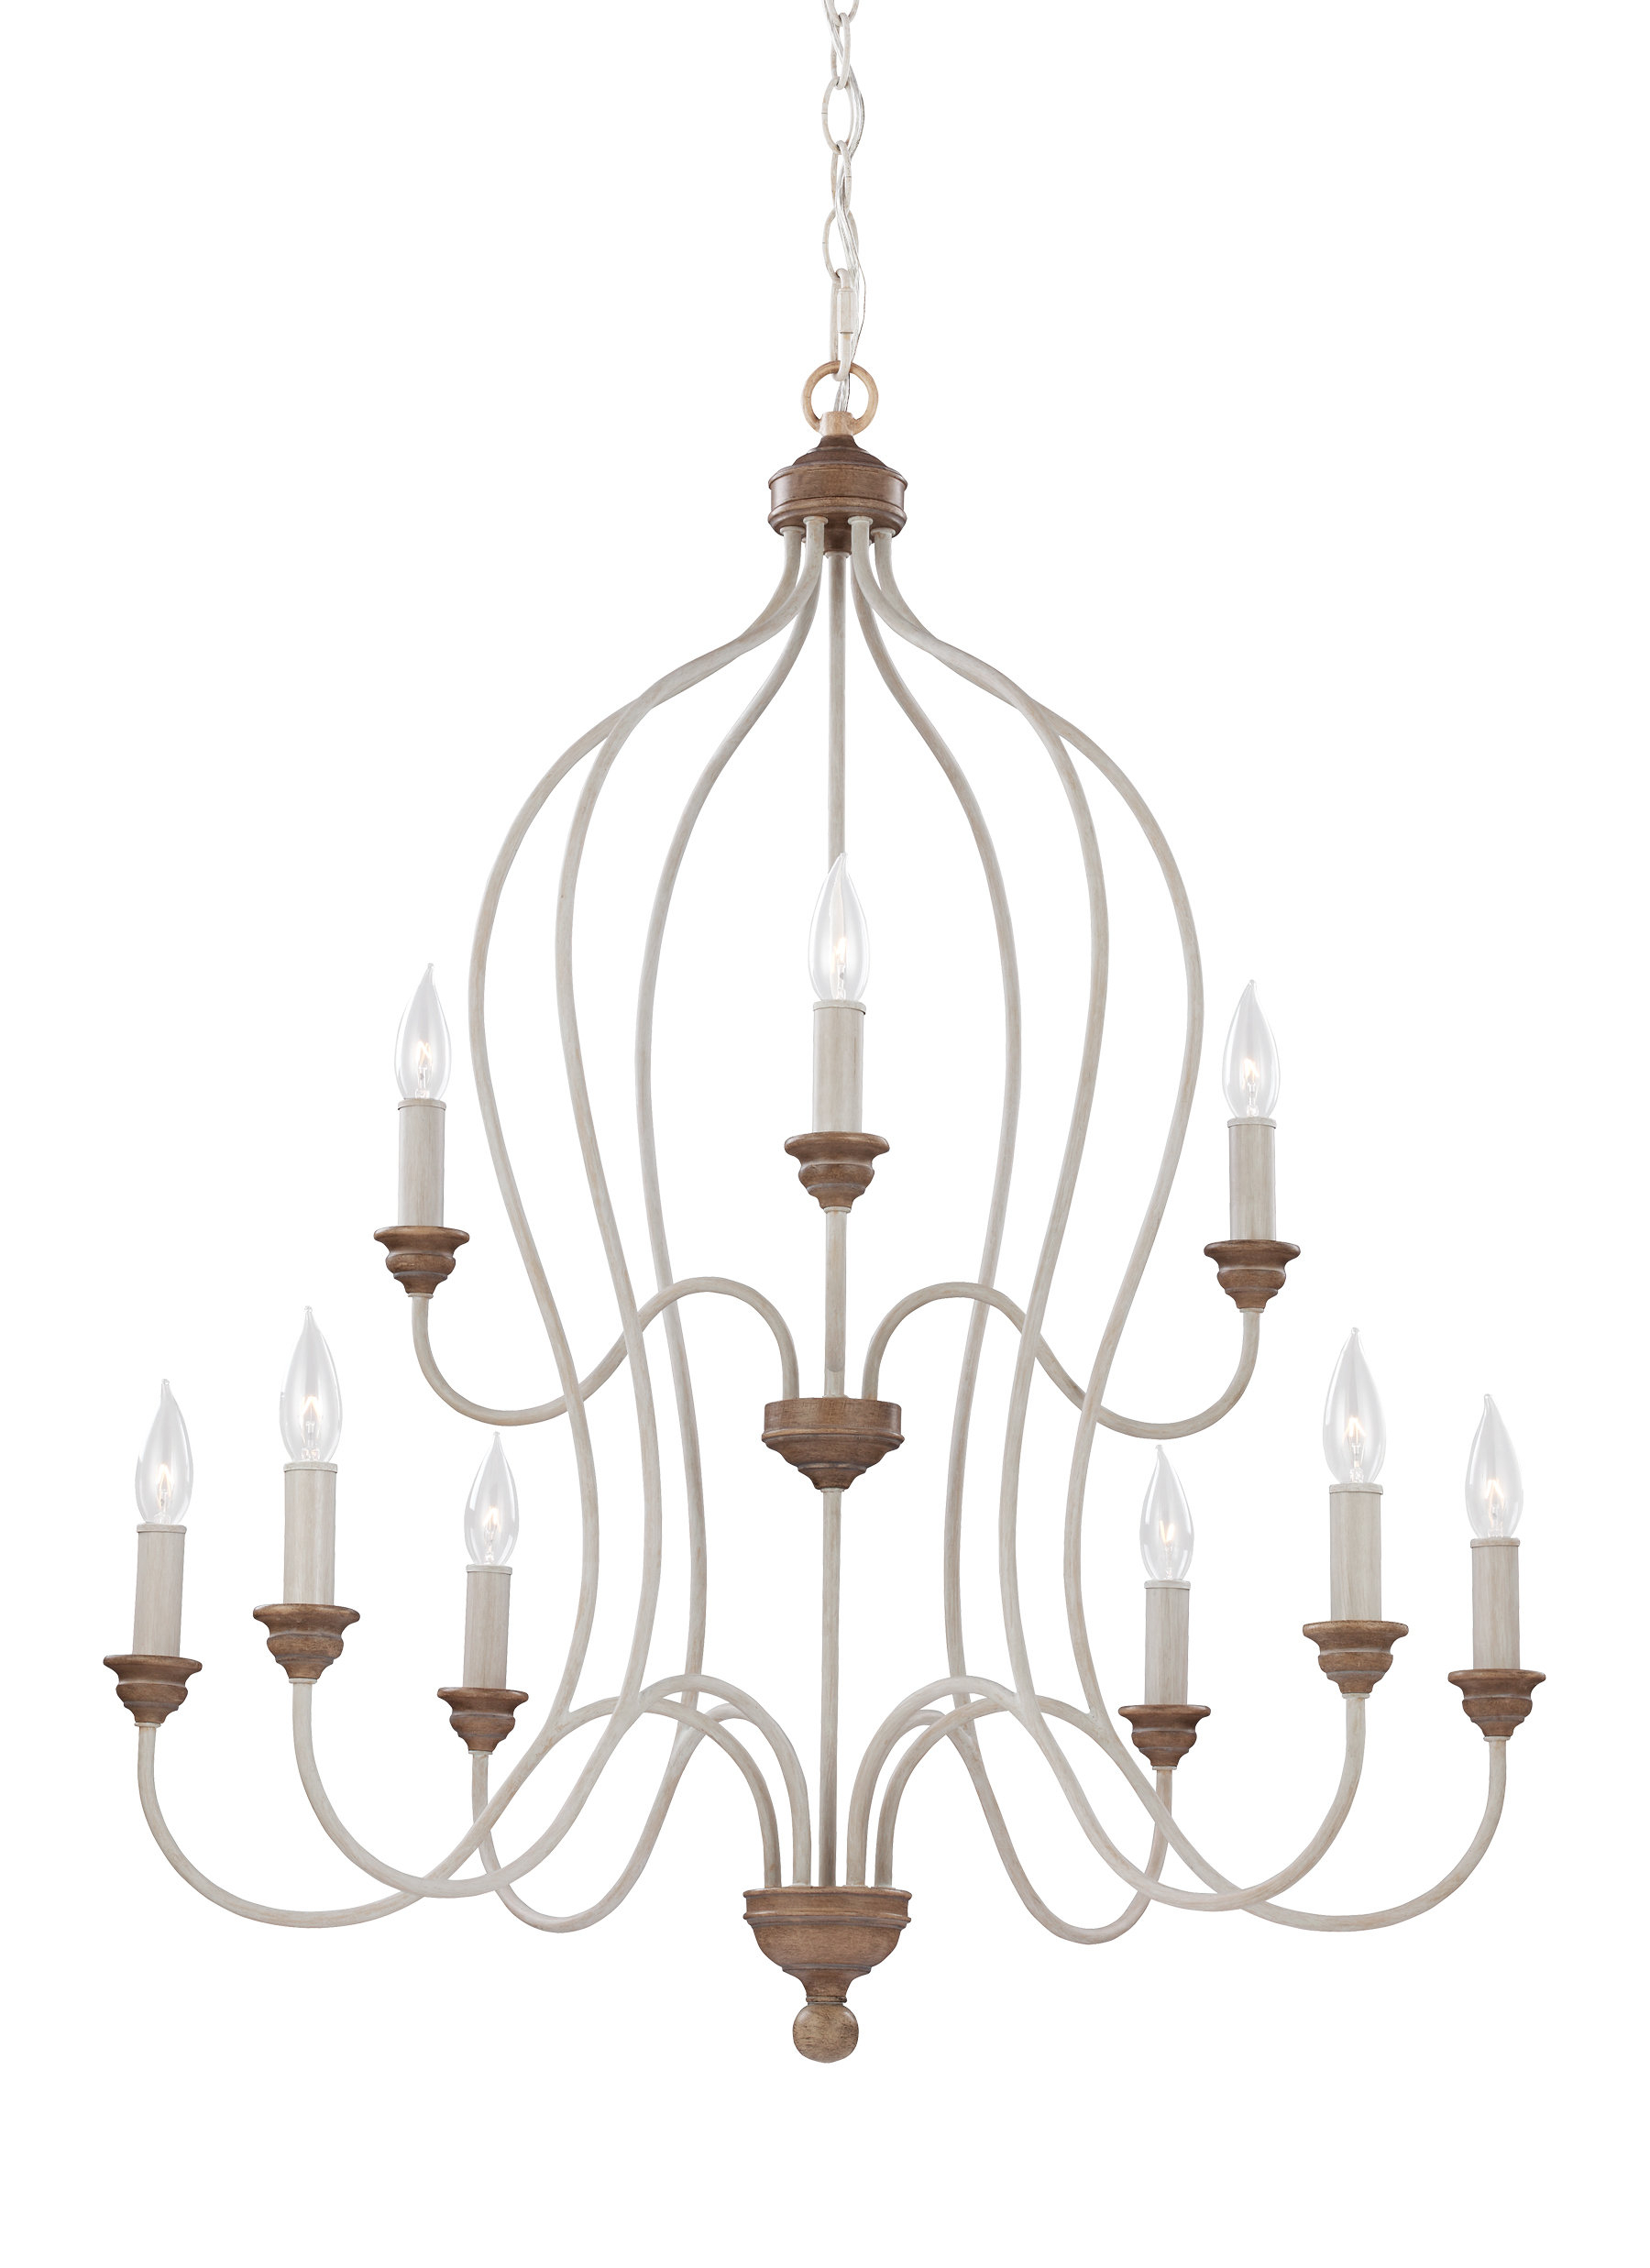 Sundberg 9 Light Candle Style Chandelier With Most Up To Date Hesse 5 Light Candle Style Chandeliers (View 20 of 25)